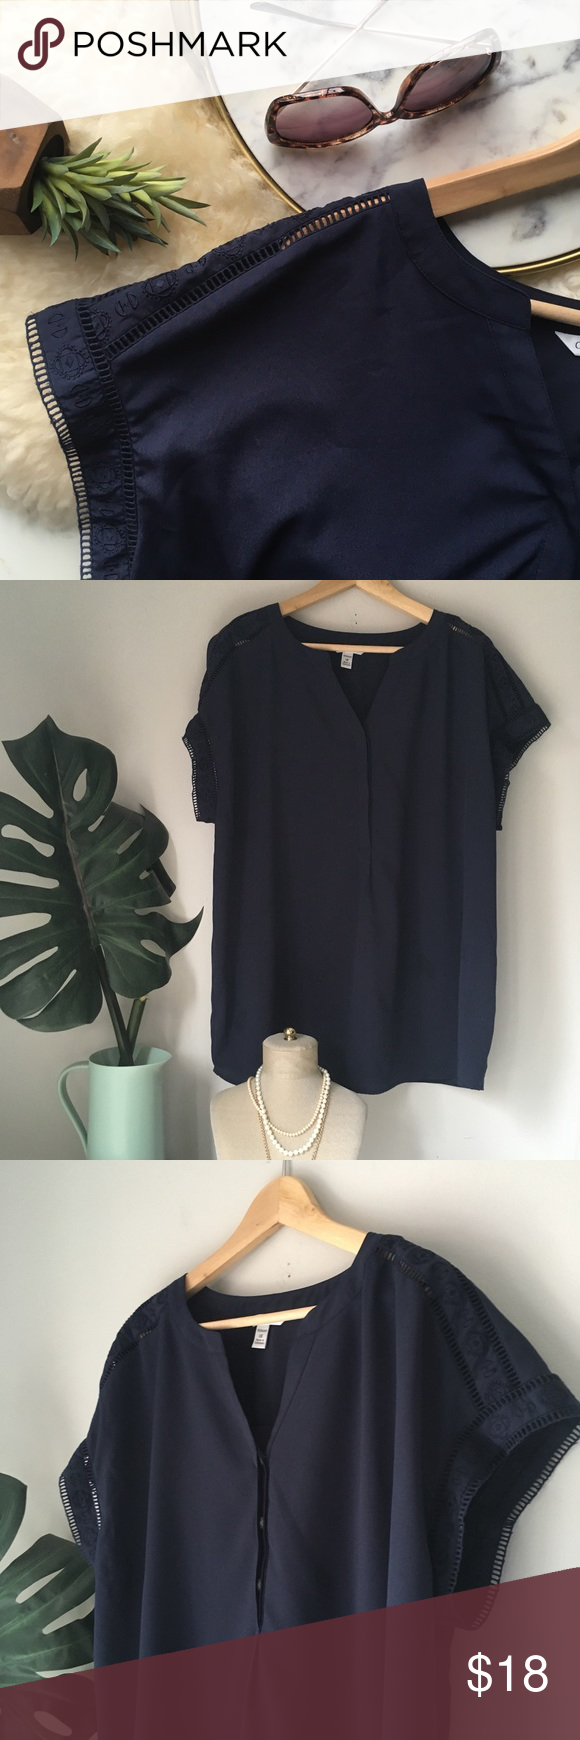 "Silky Navy Henley Blouse Beautiful top to wear casually with jeans or tuck into a skirt! Very good preowned condition.   24"" Across 29"" Length croft & barrow Tops Blouses"